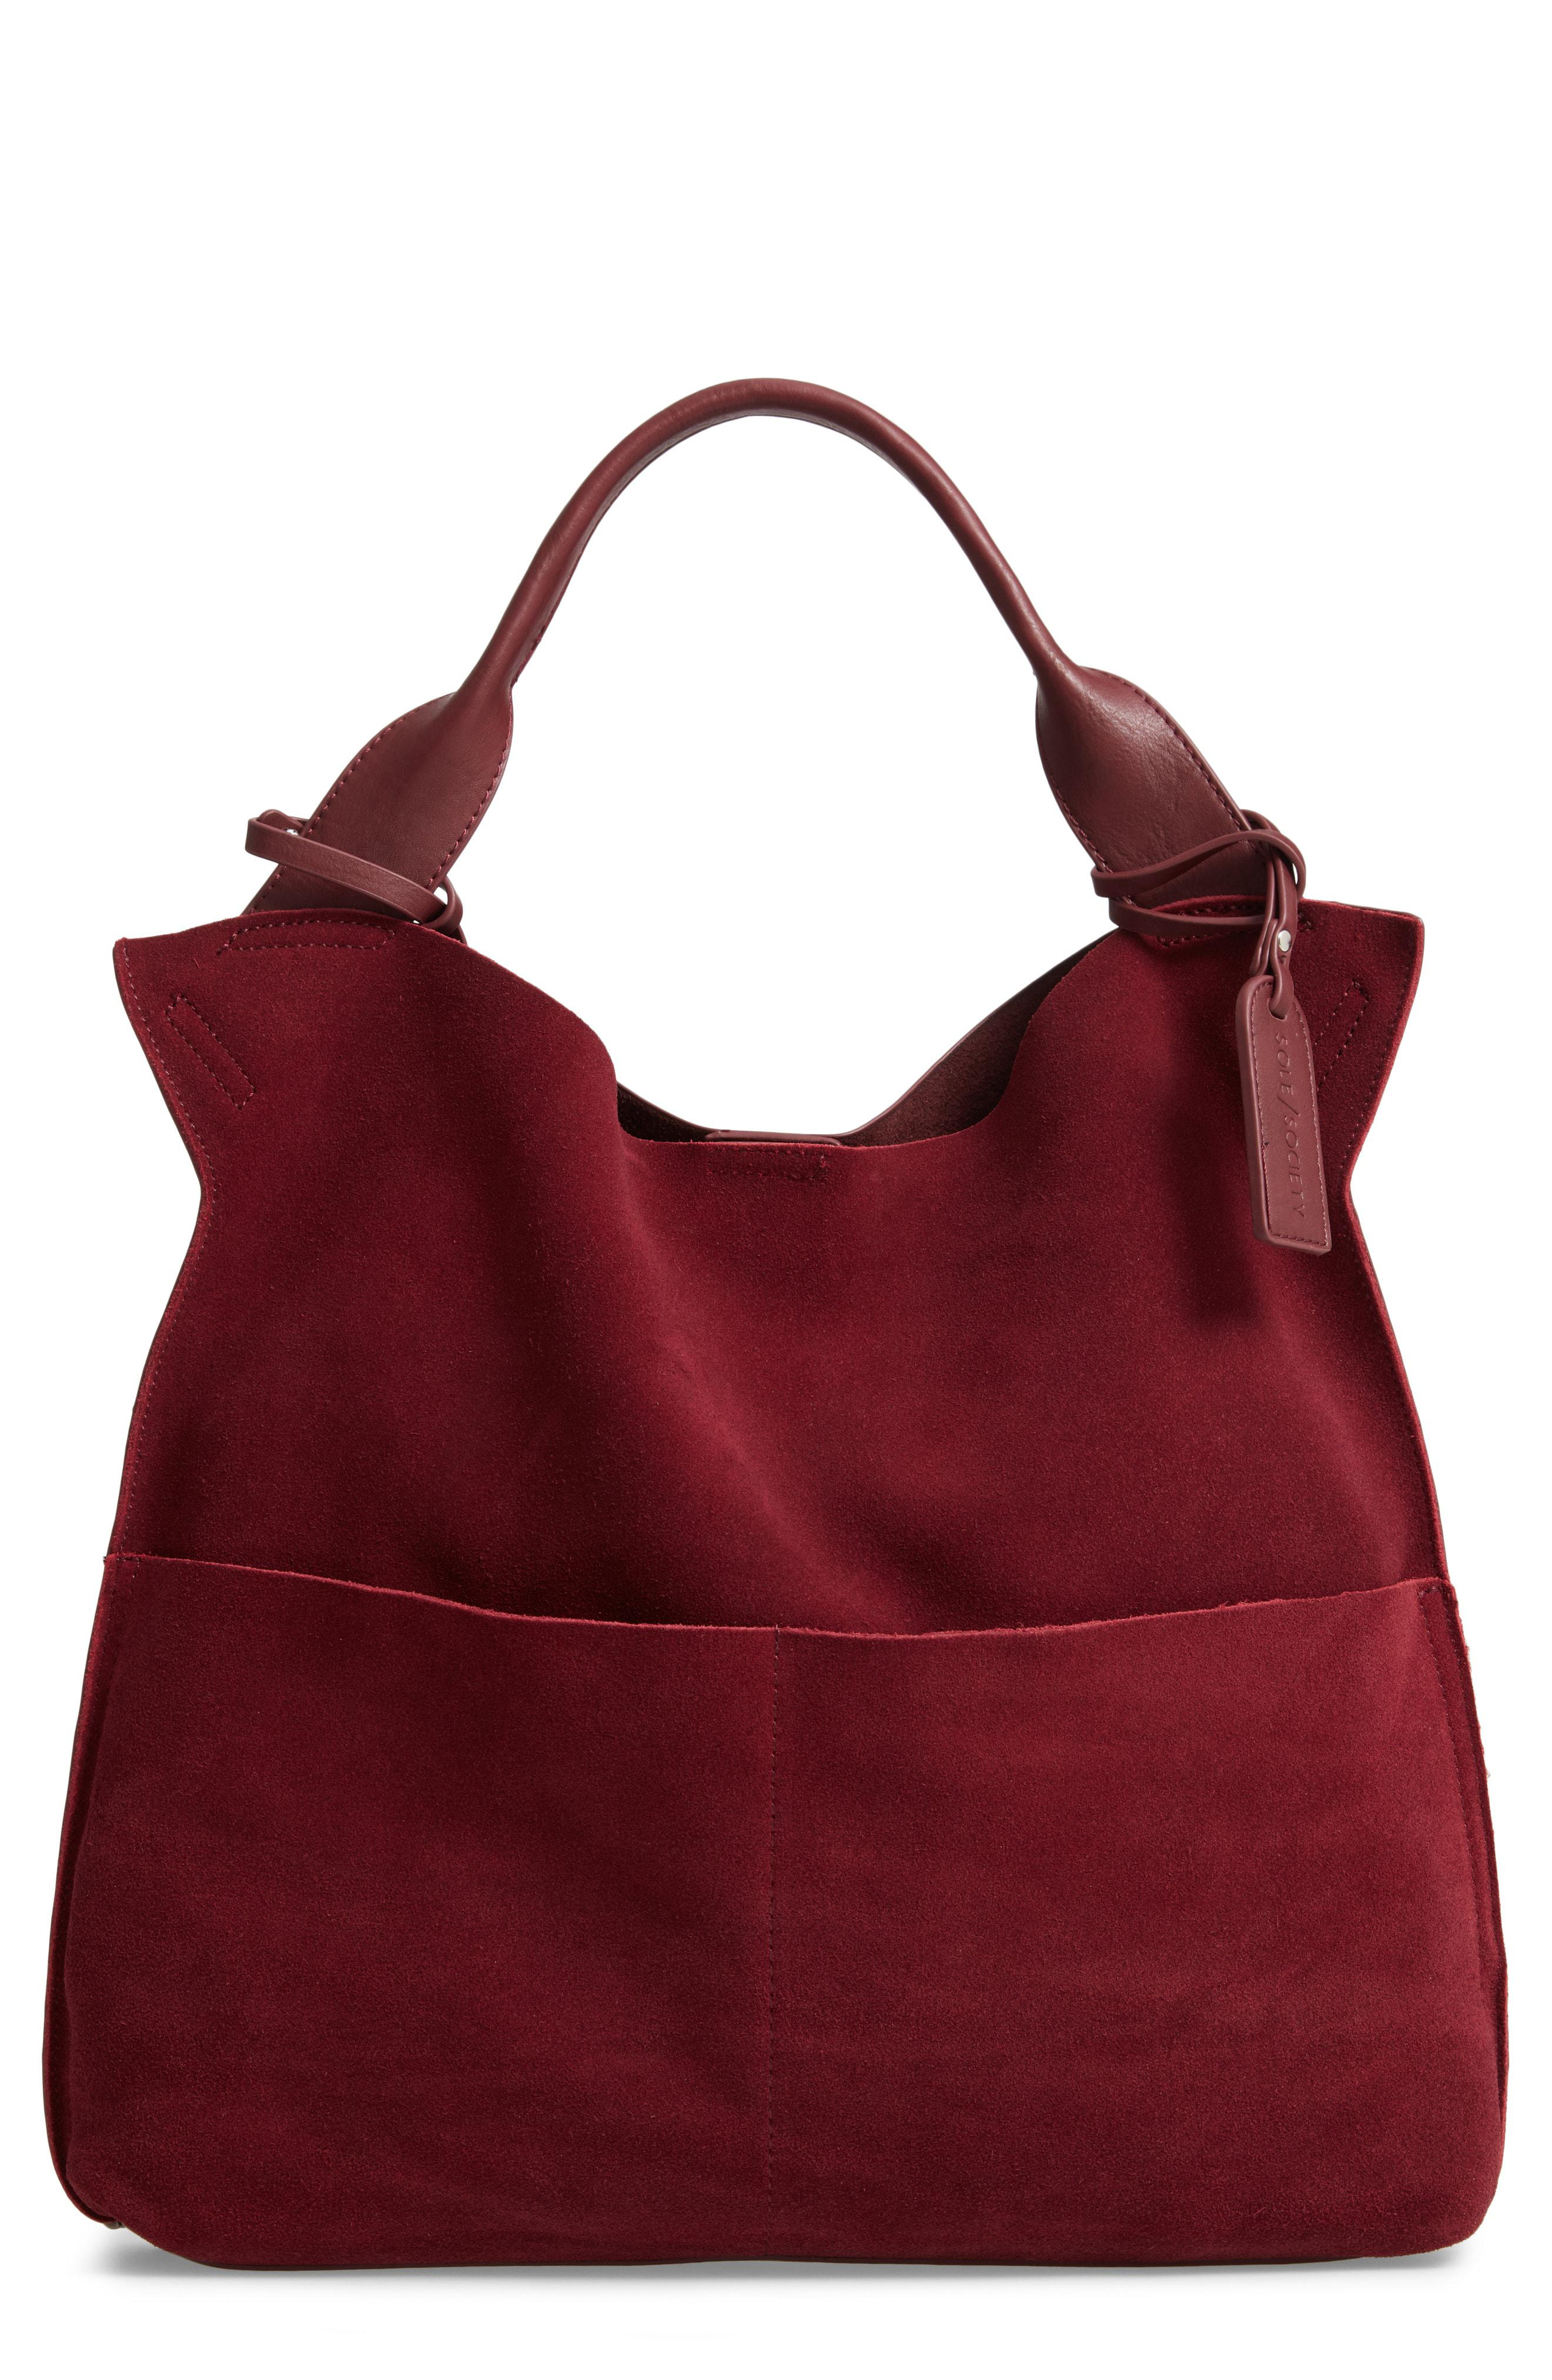 d9a9c7765e5a Lyst - Sole Society Jamari Suede   Faux Leather Tote - in Red